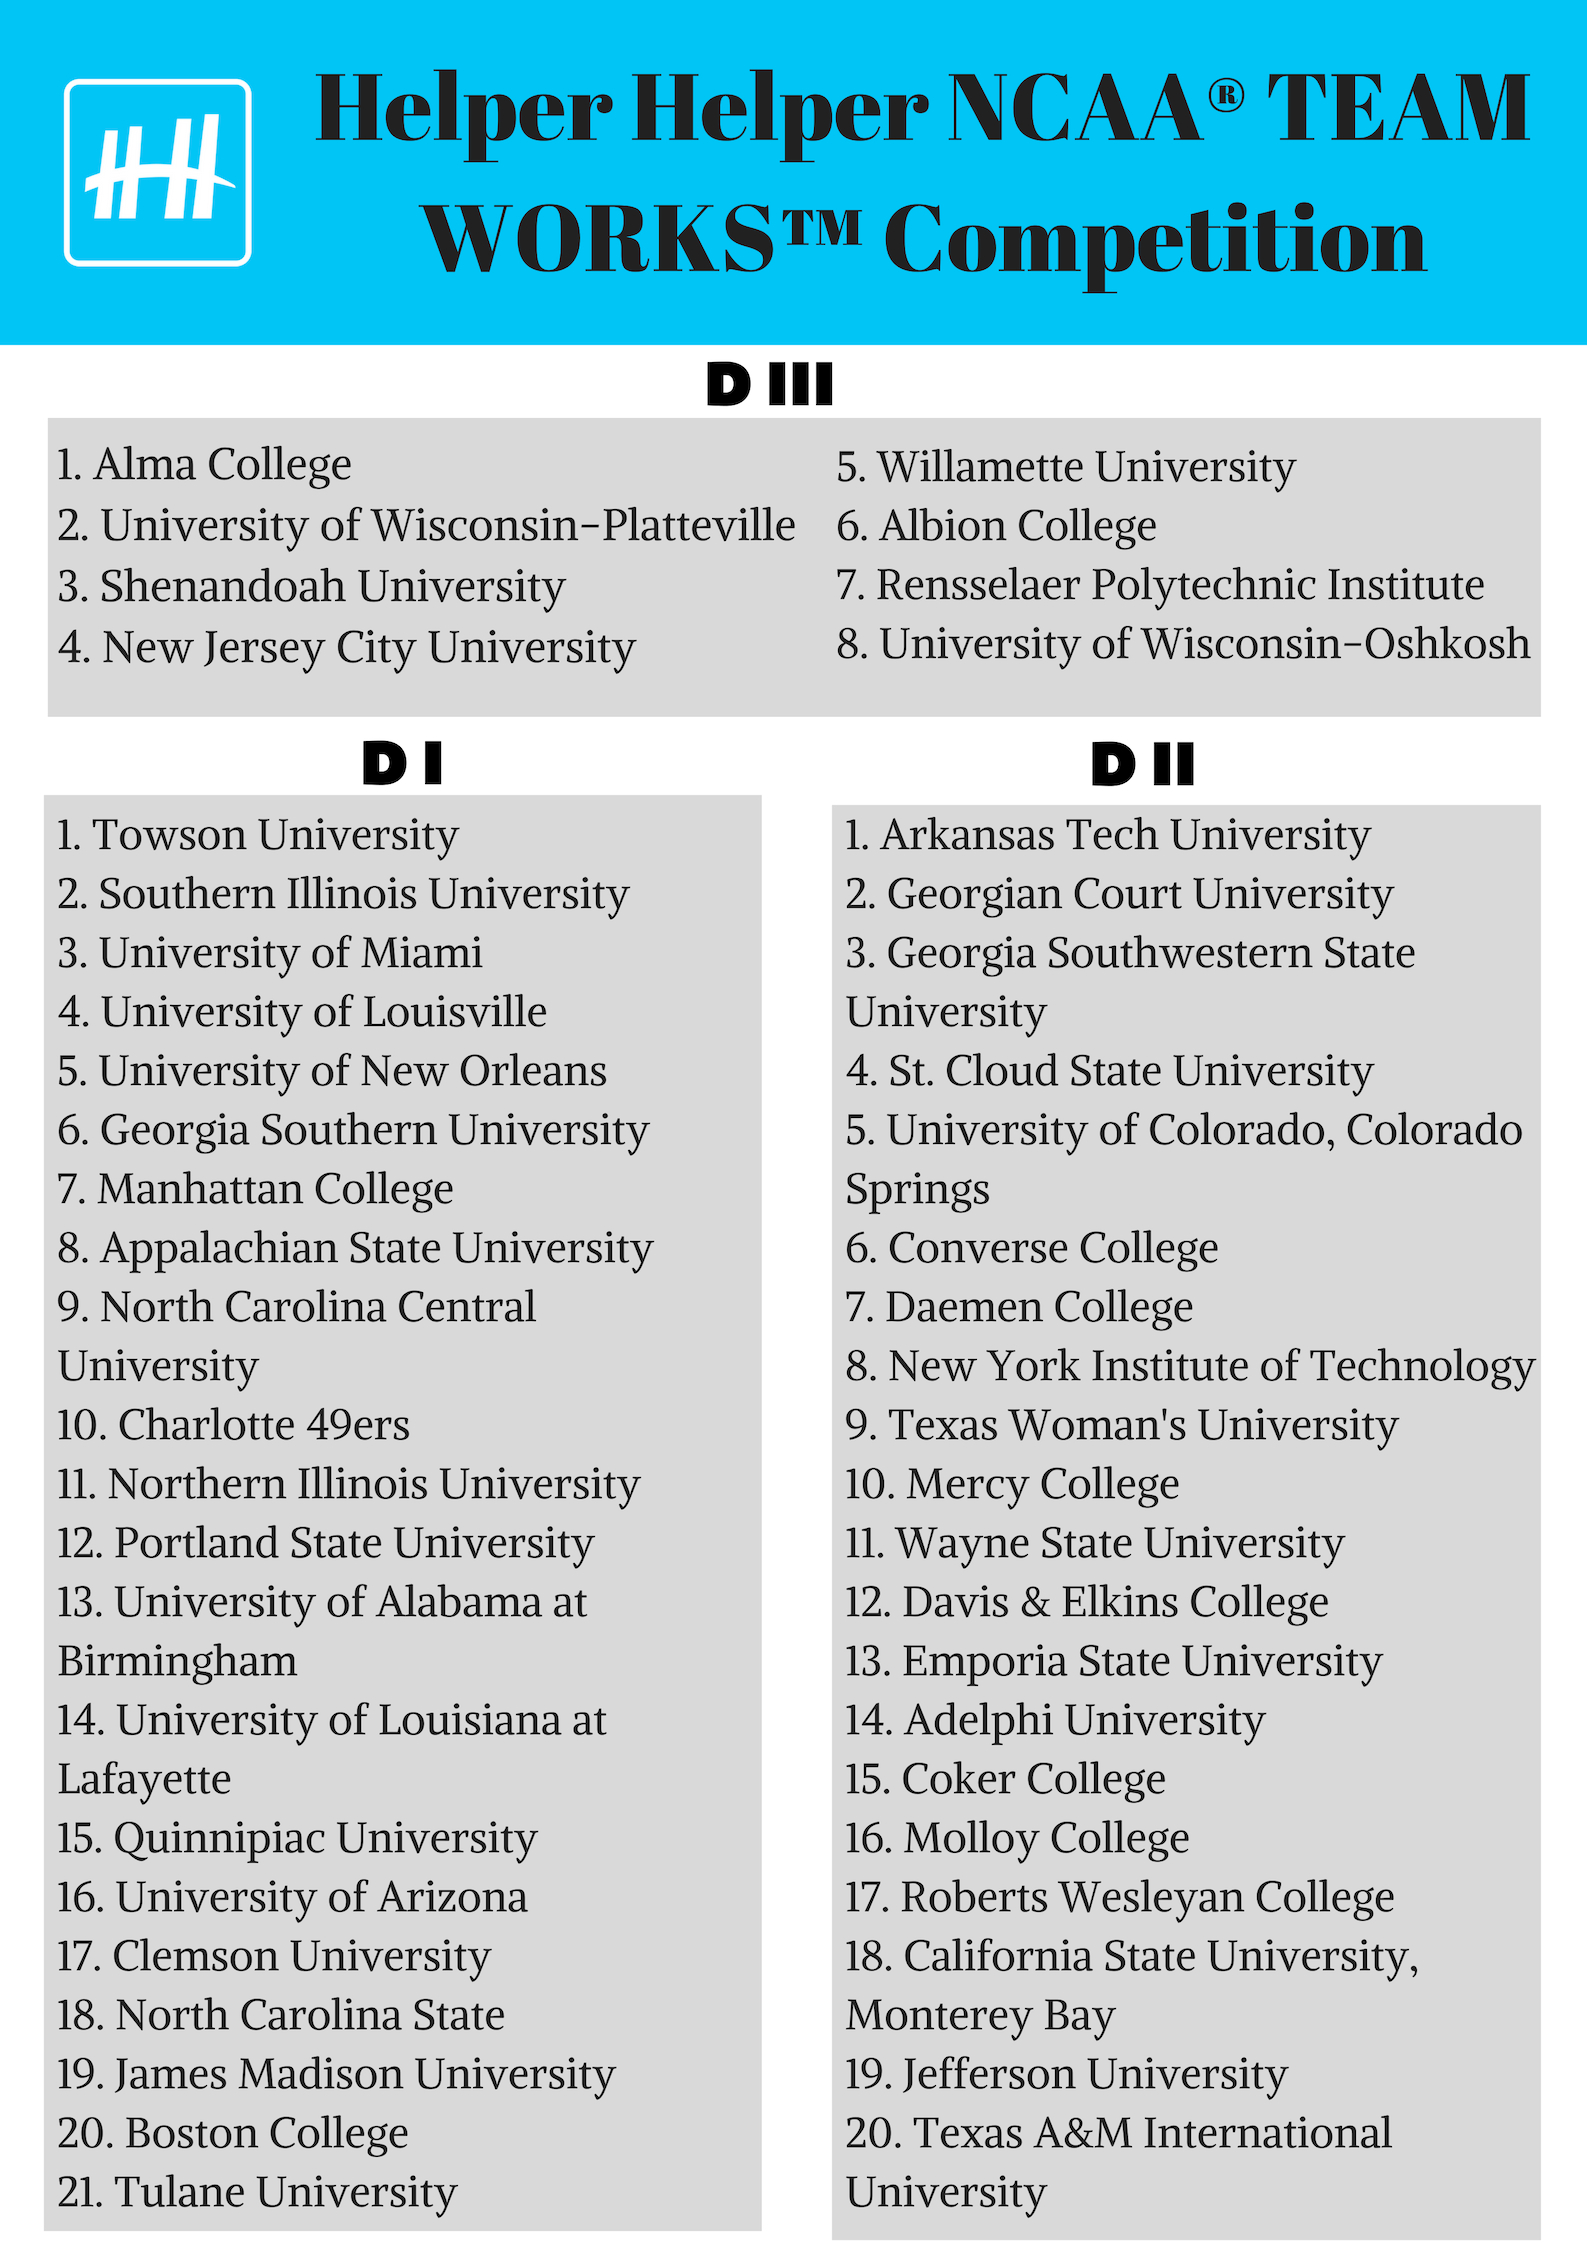 NCAA Community Service Competition Standings